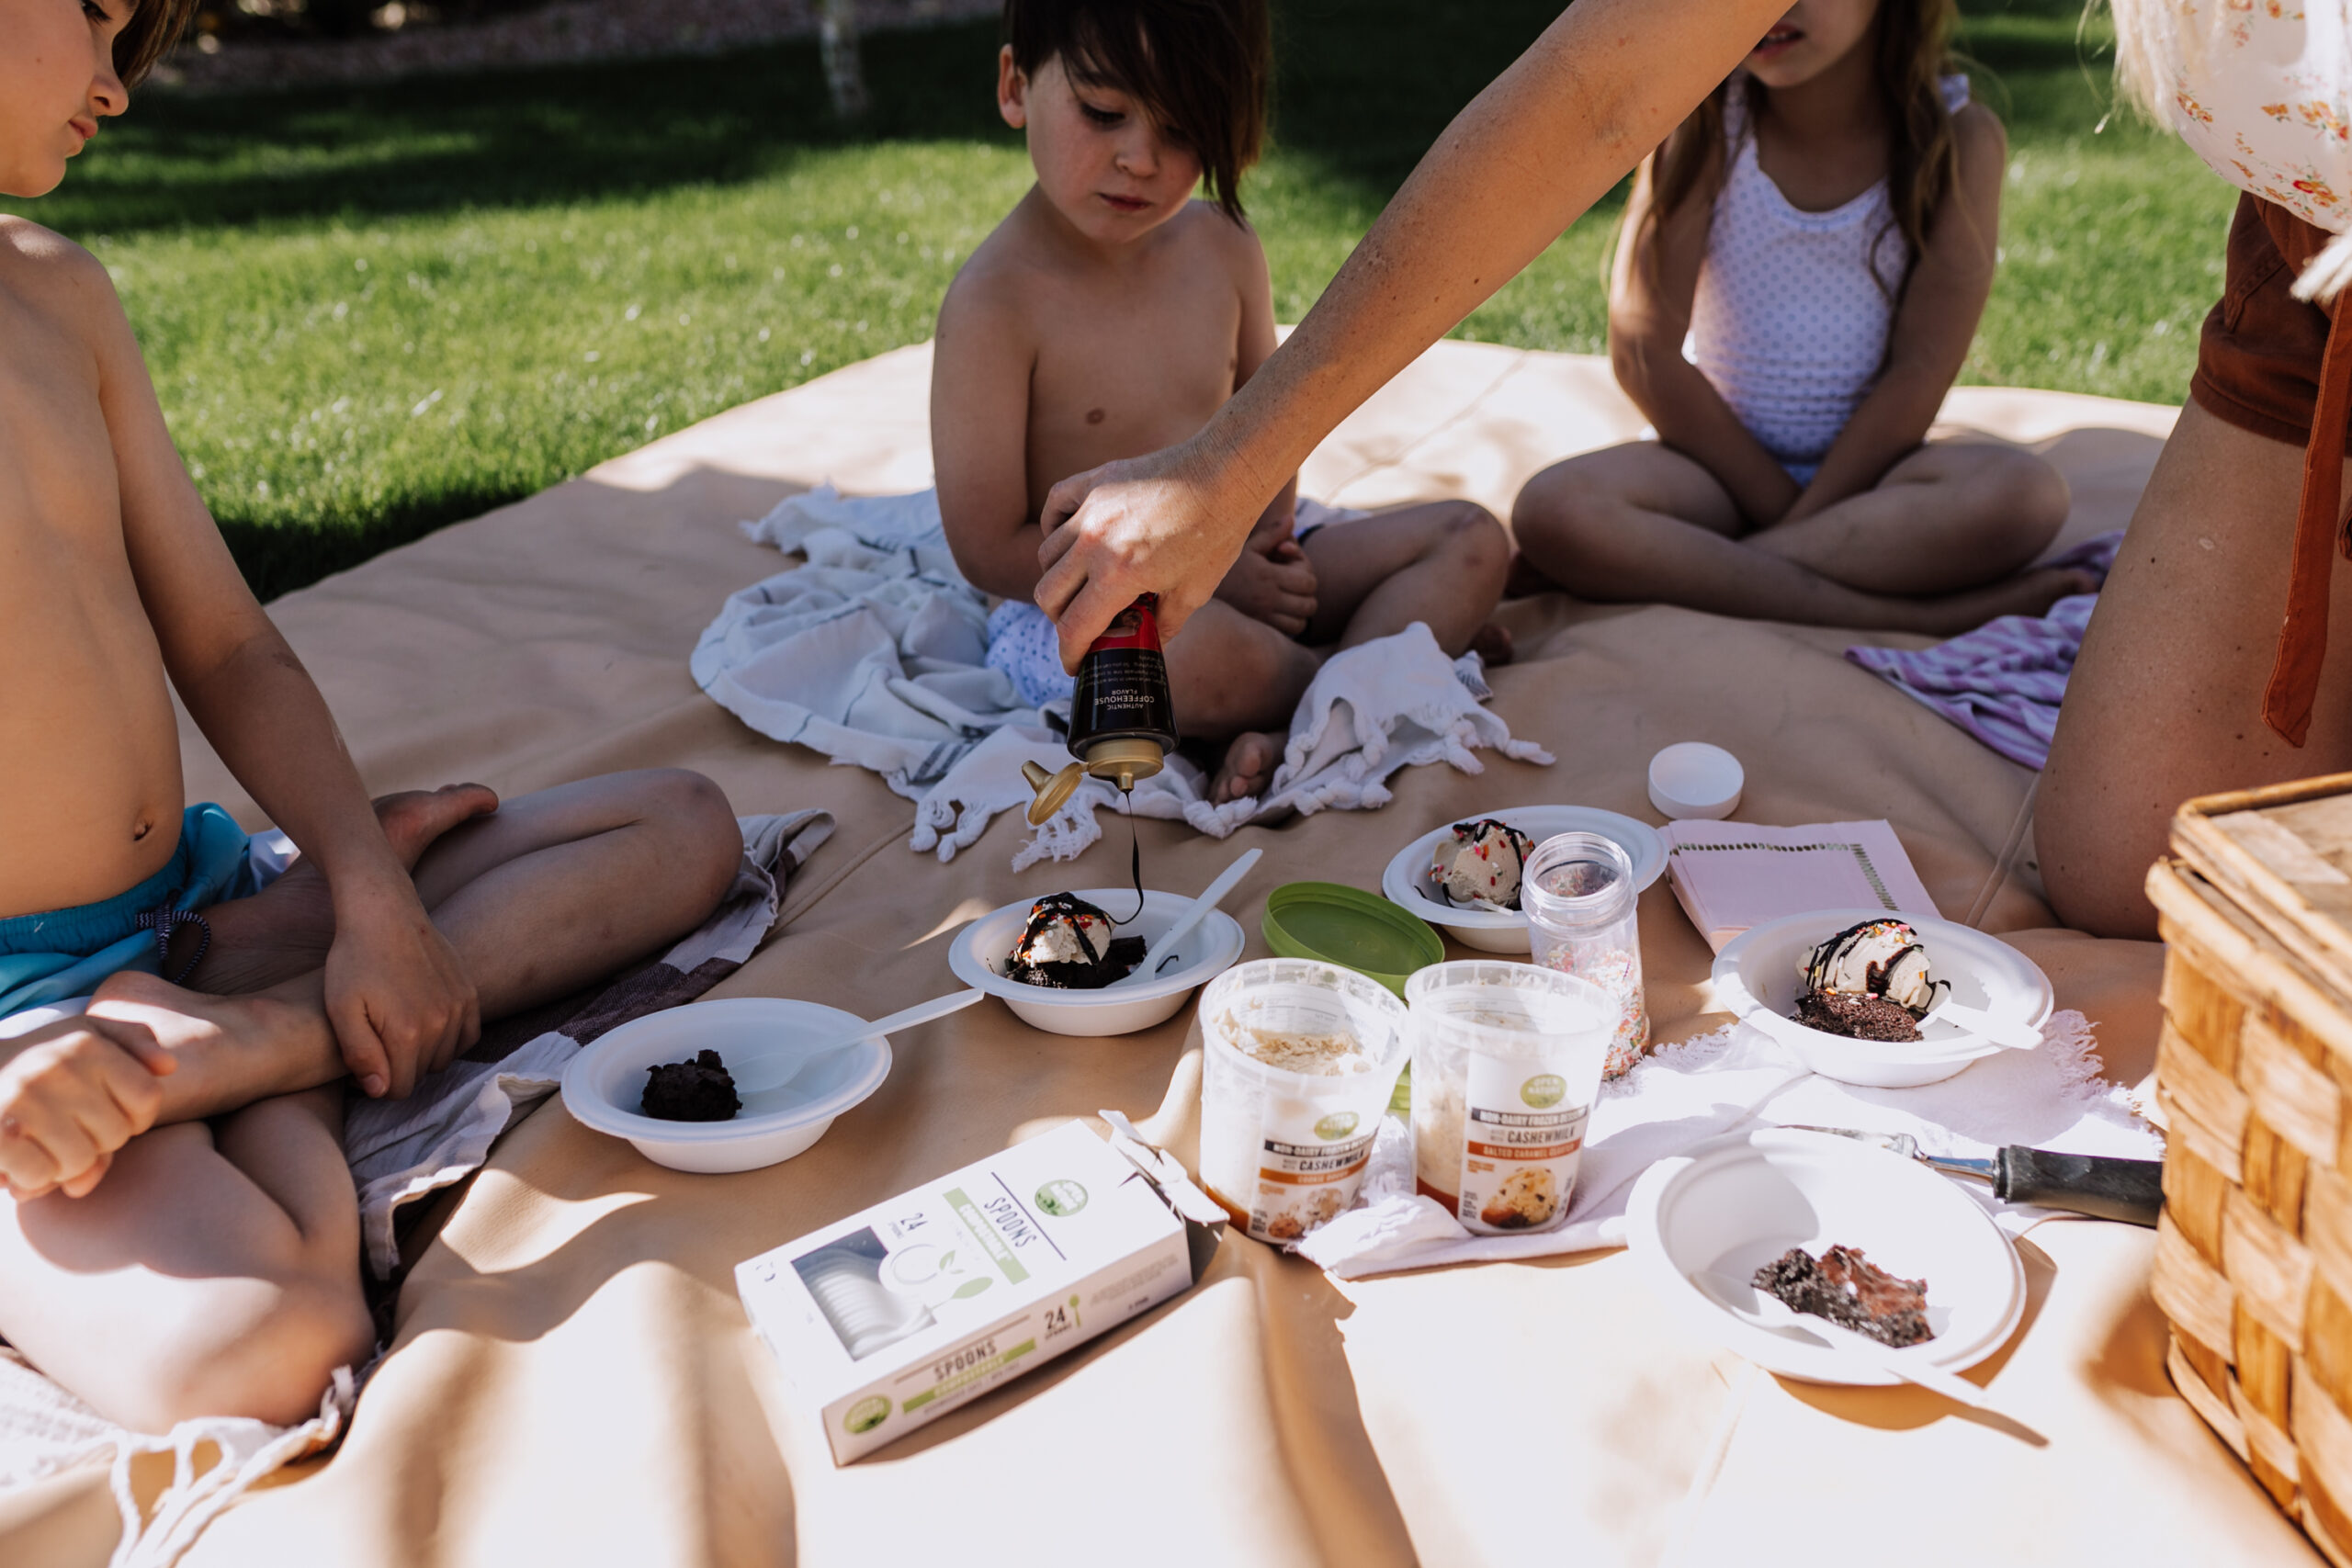 serving up gluten and dairy free sundaes in our backyard. #sundaesonsuday #backyardpicnic #icecreamsundaes